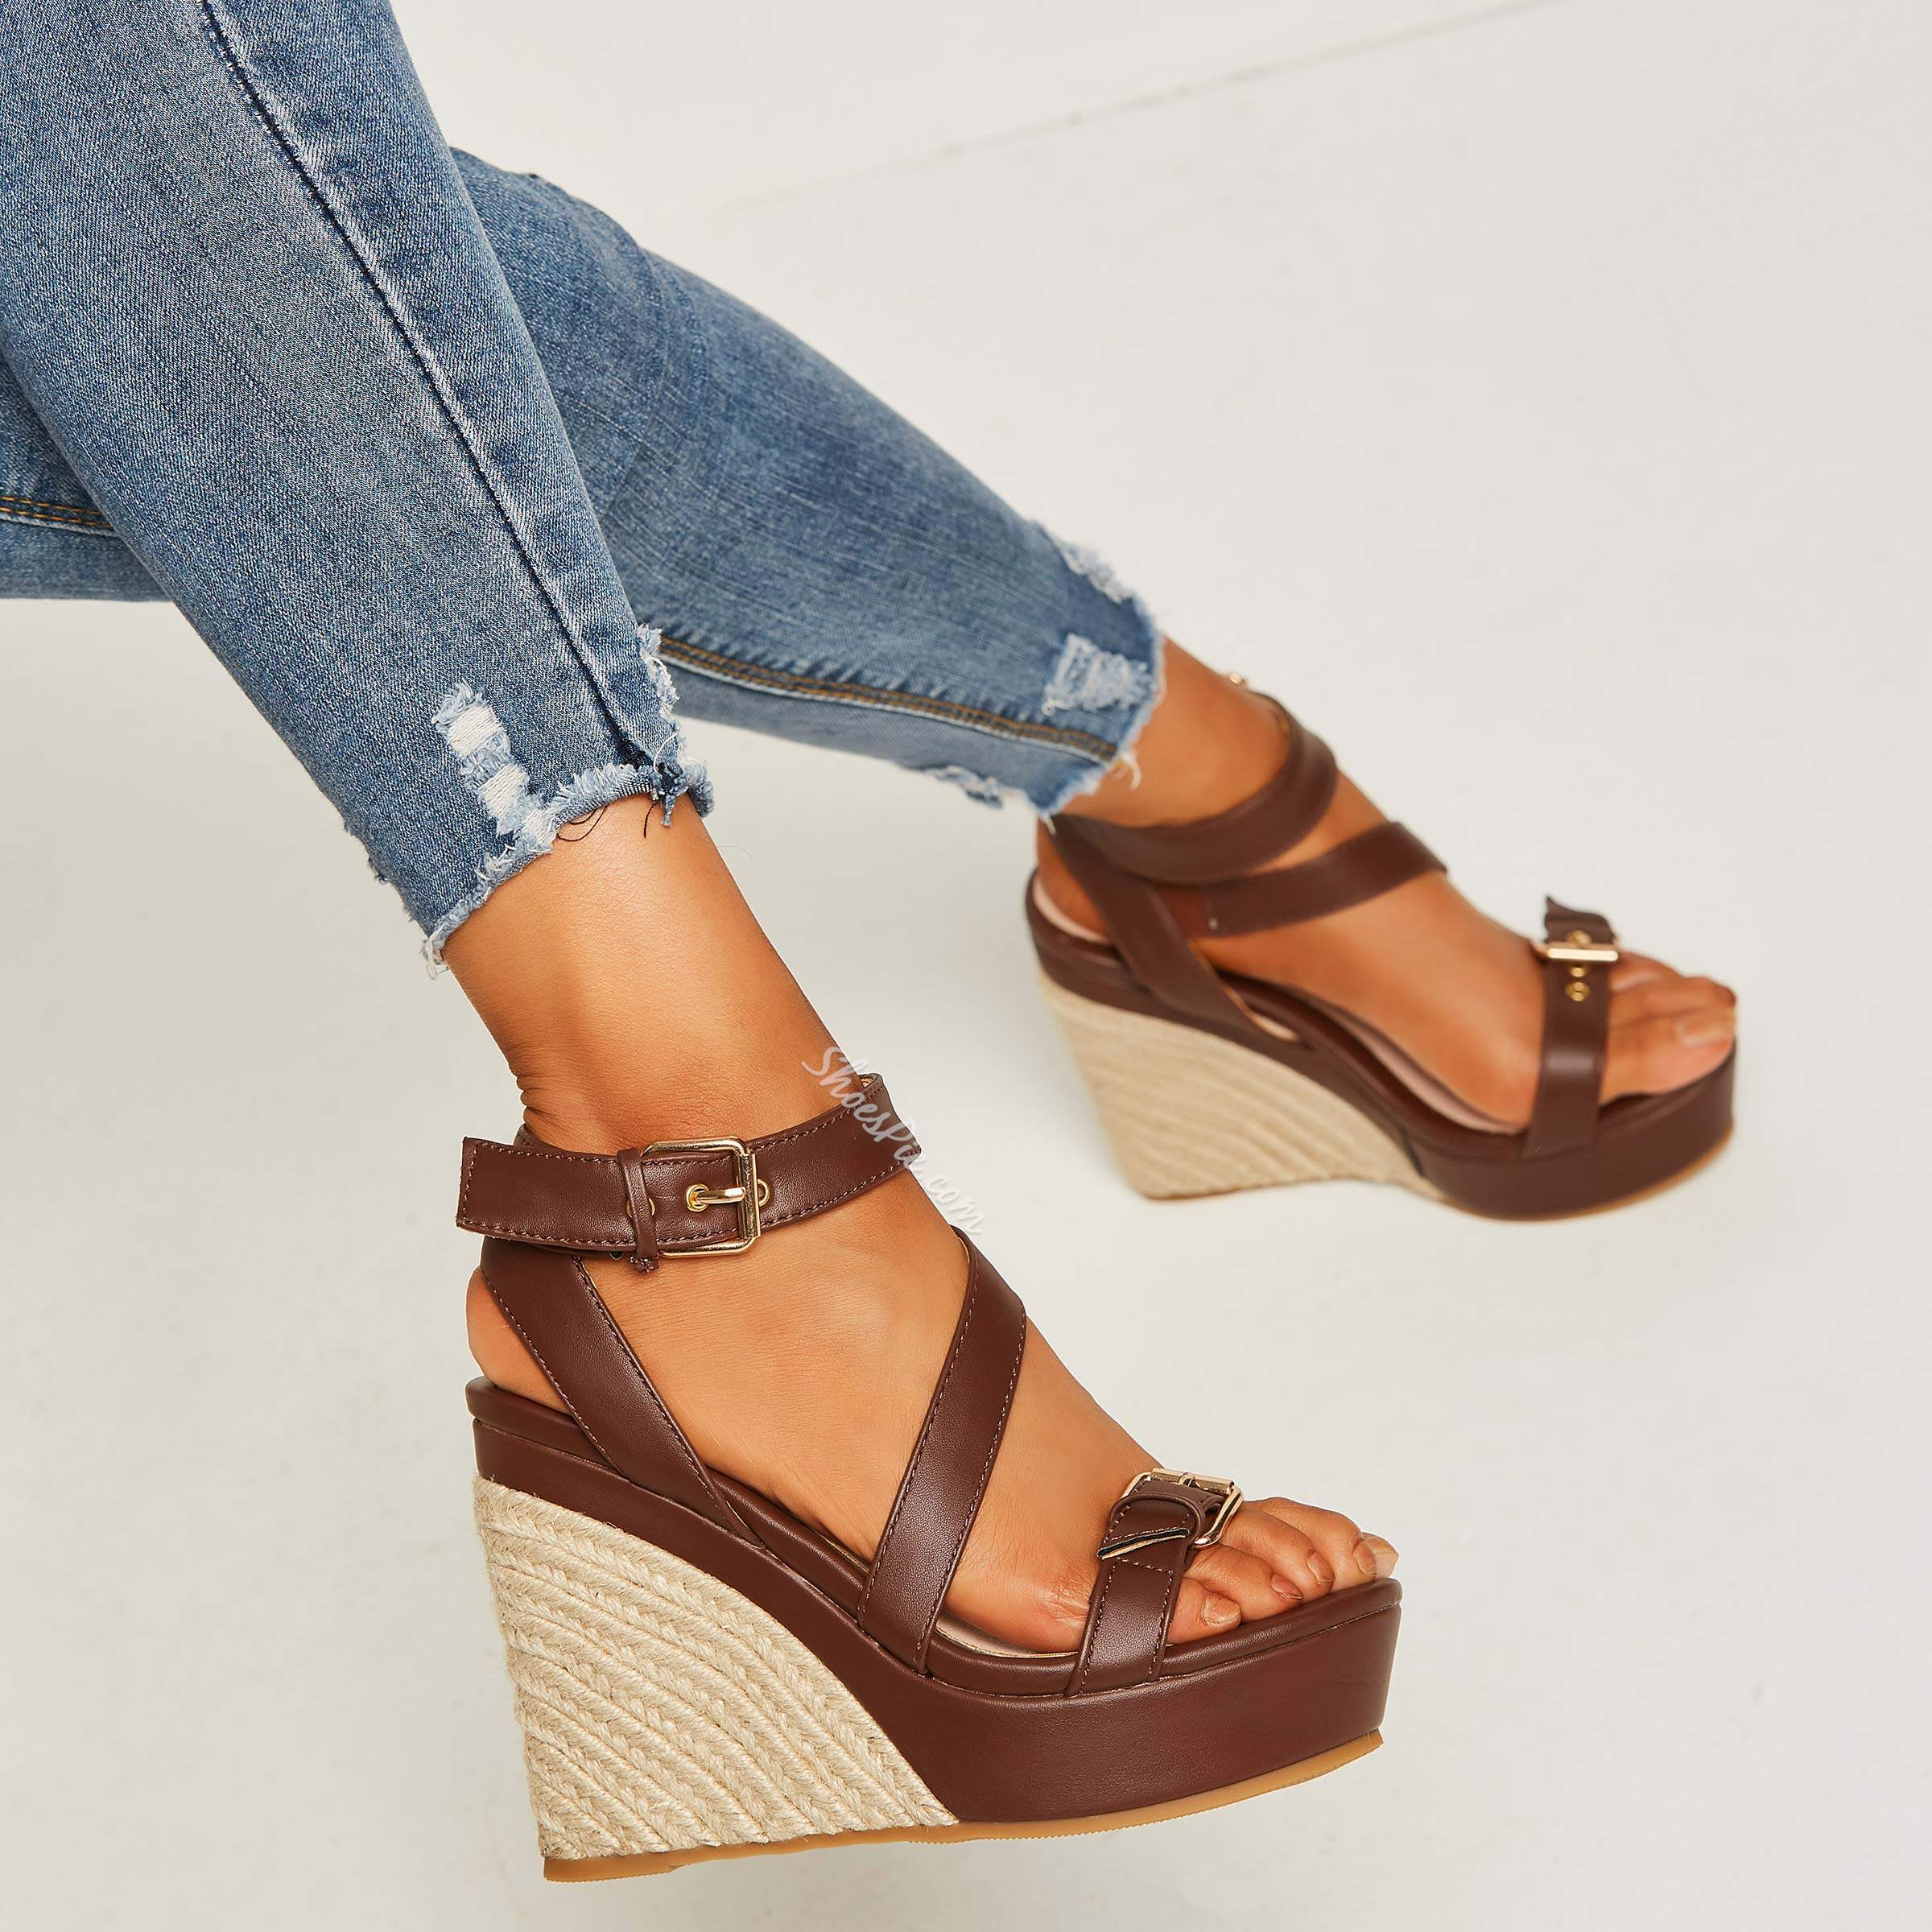 Shoespie Platform Hasp Open Toe Wedge Sandals